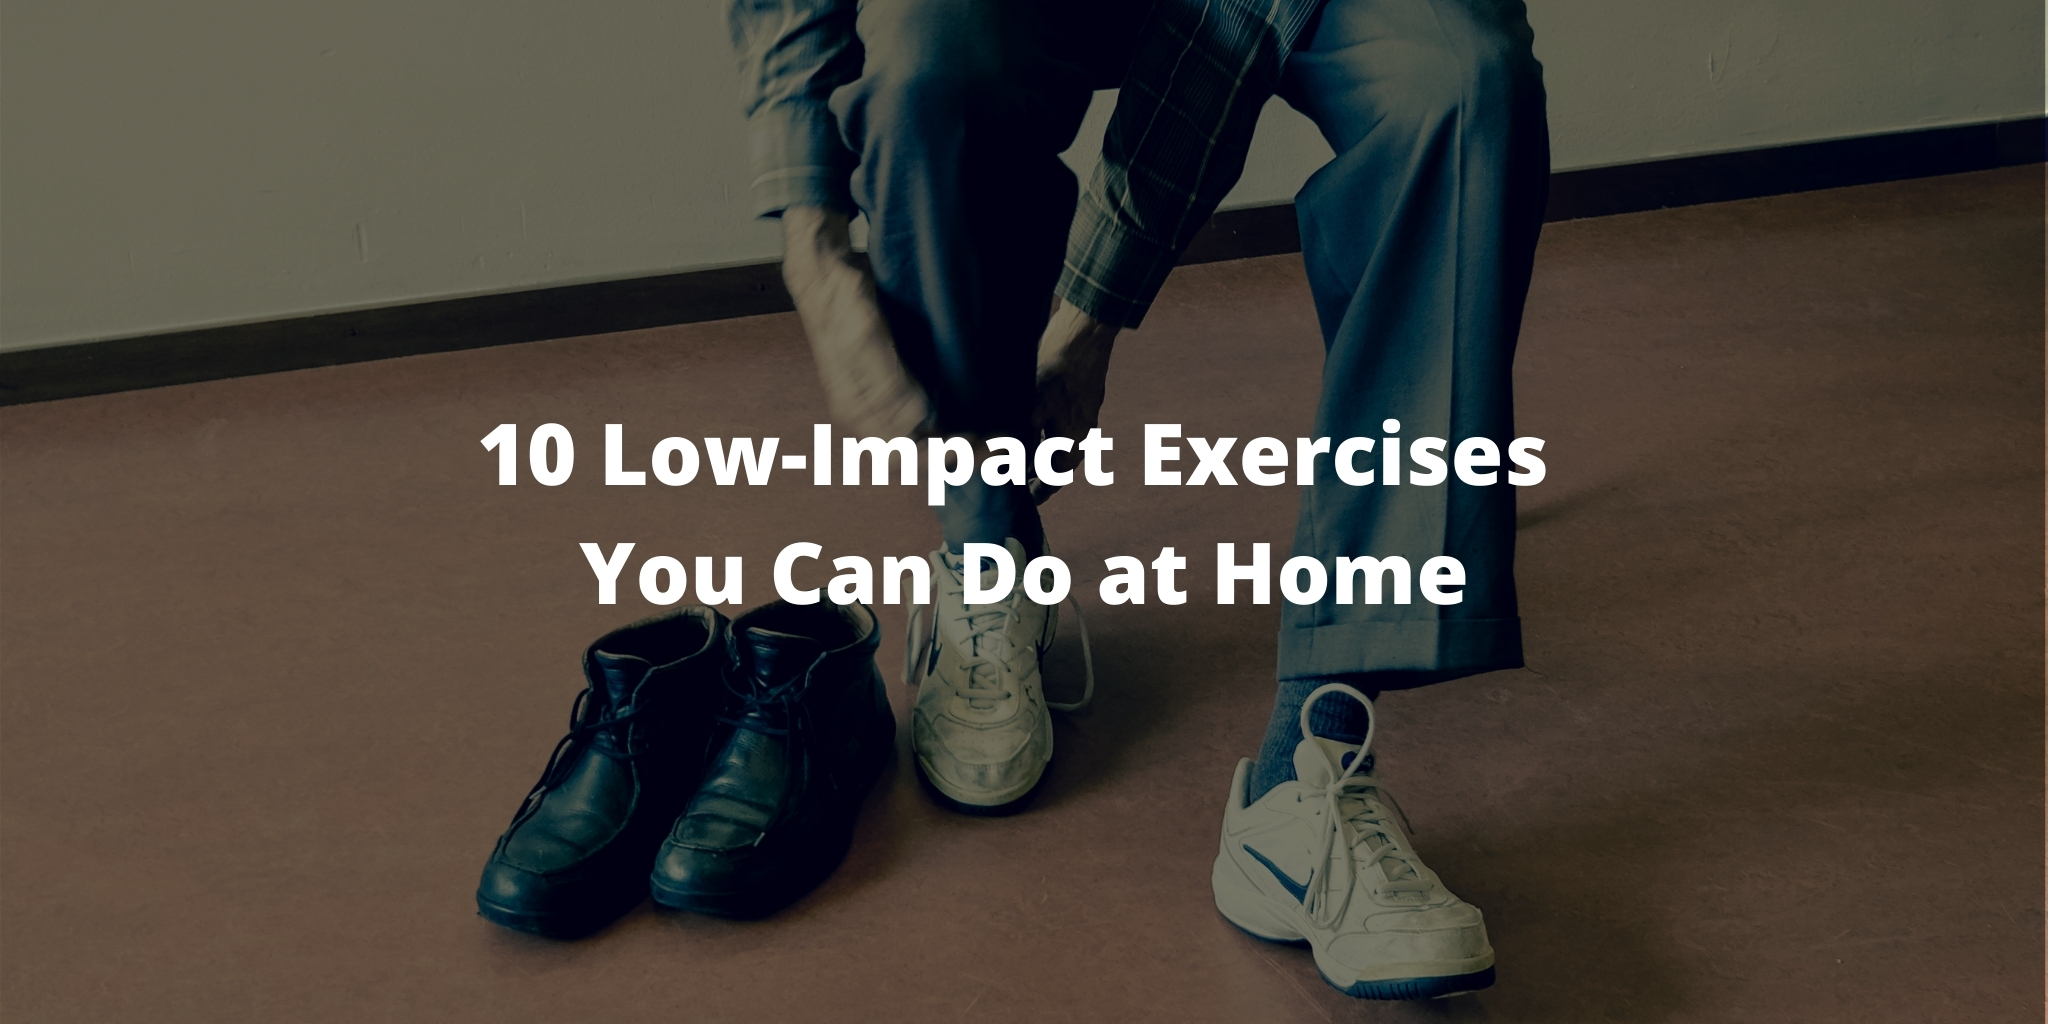 10 Low-Impact Exercises You Can Do at Home